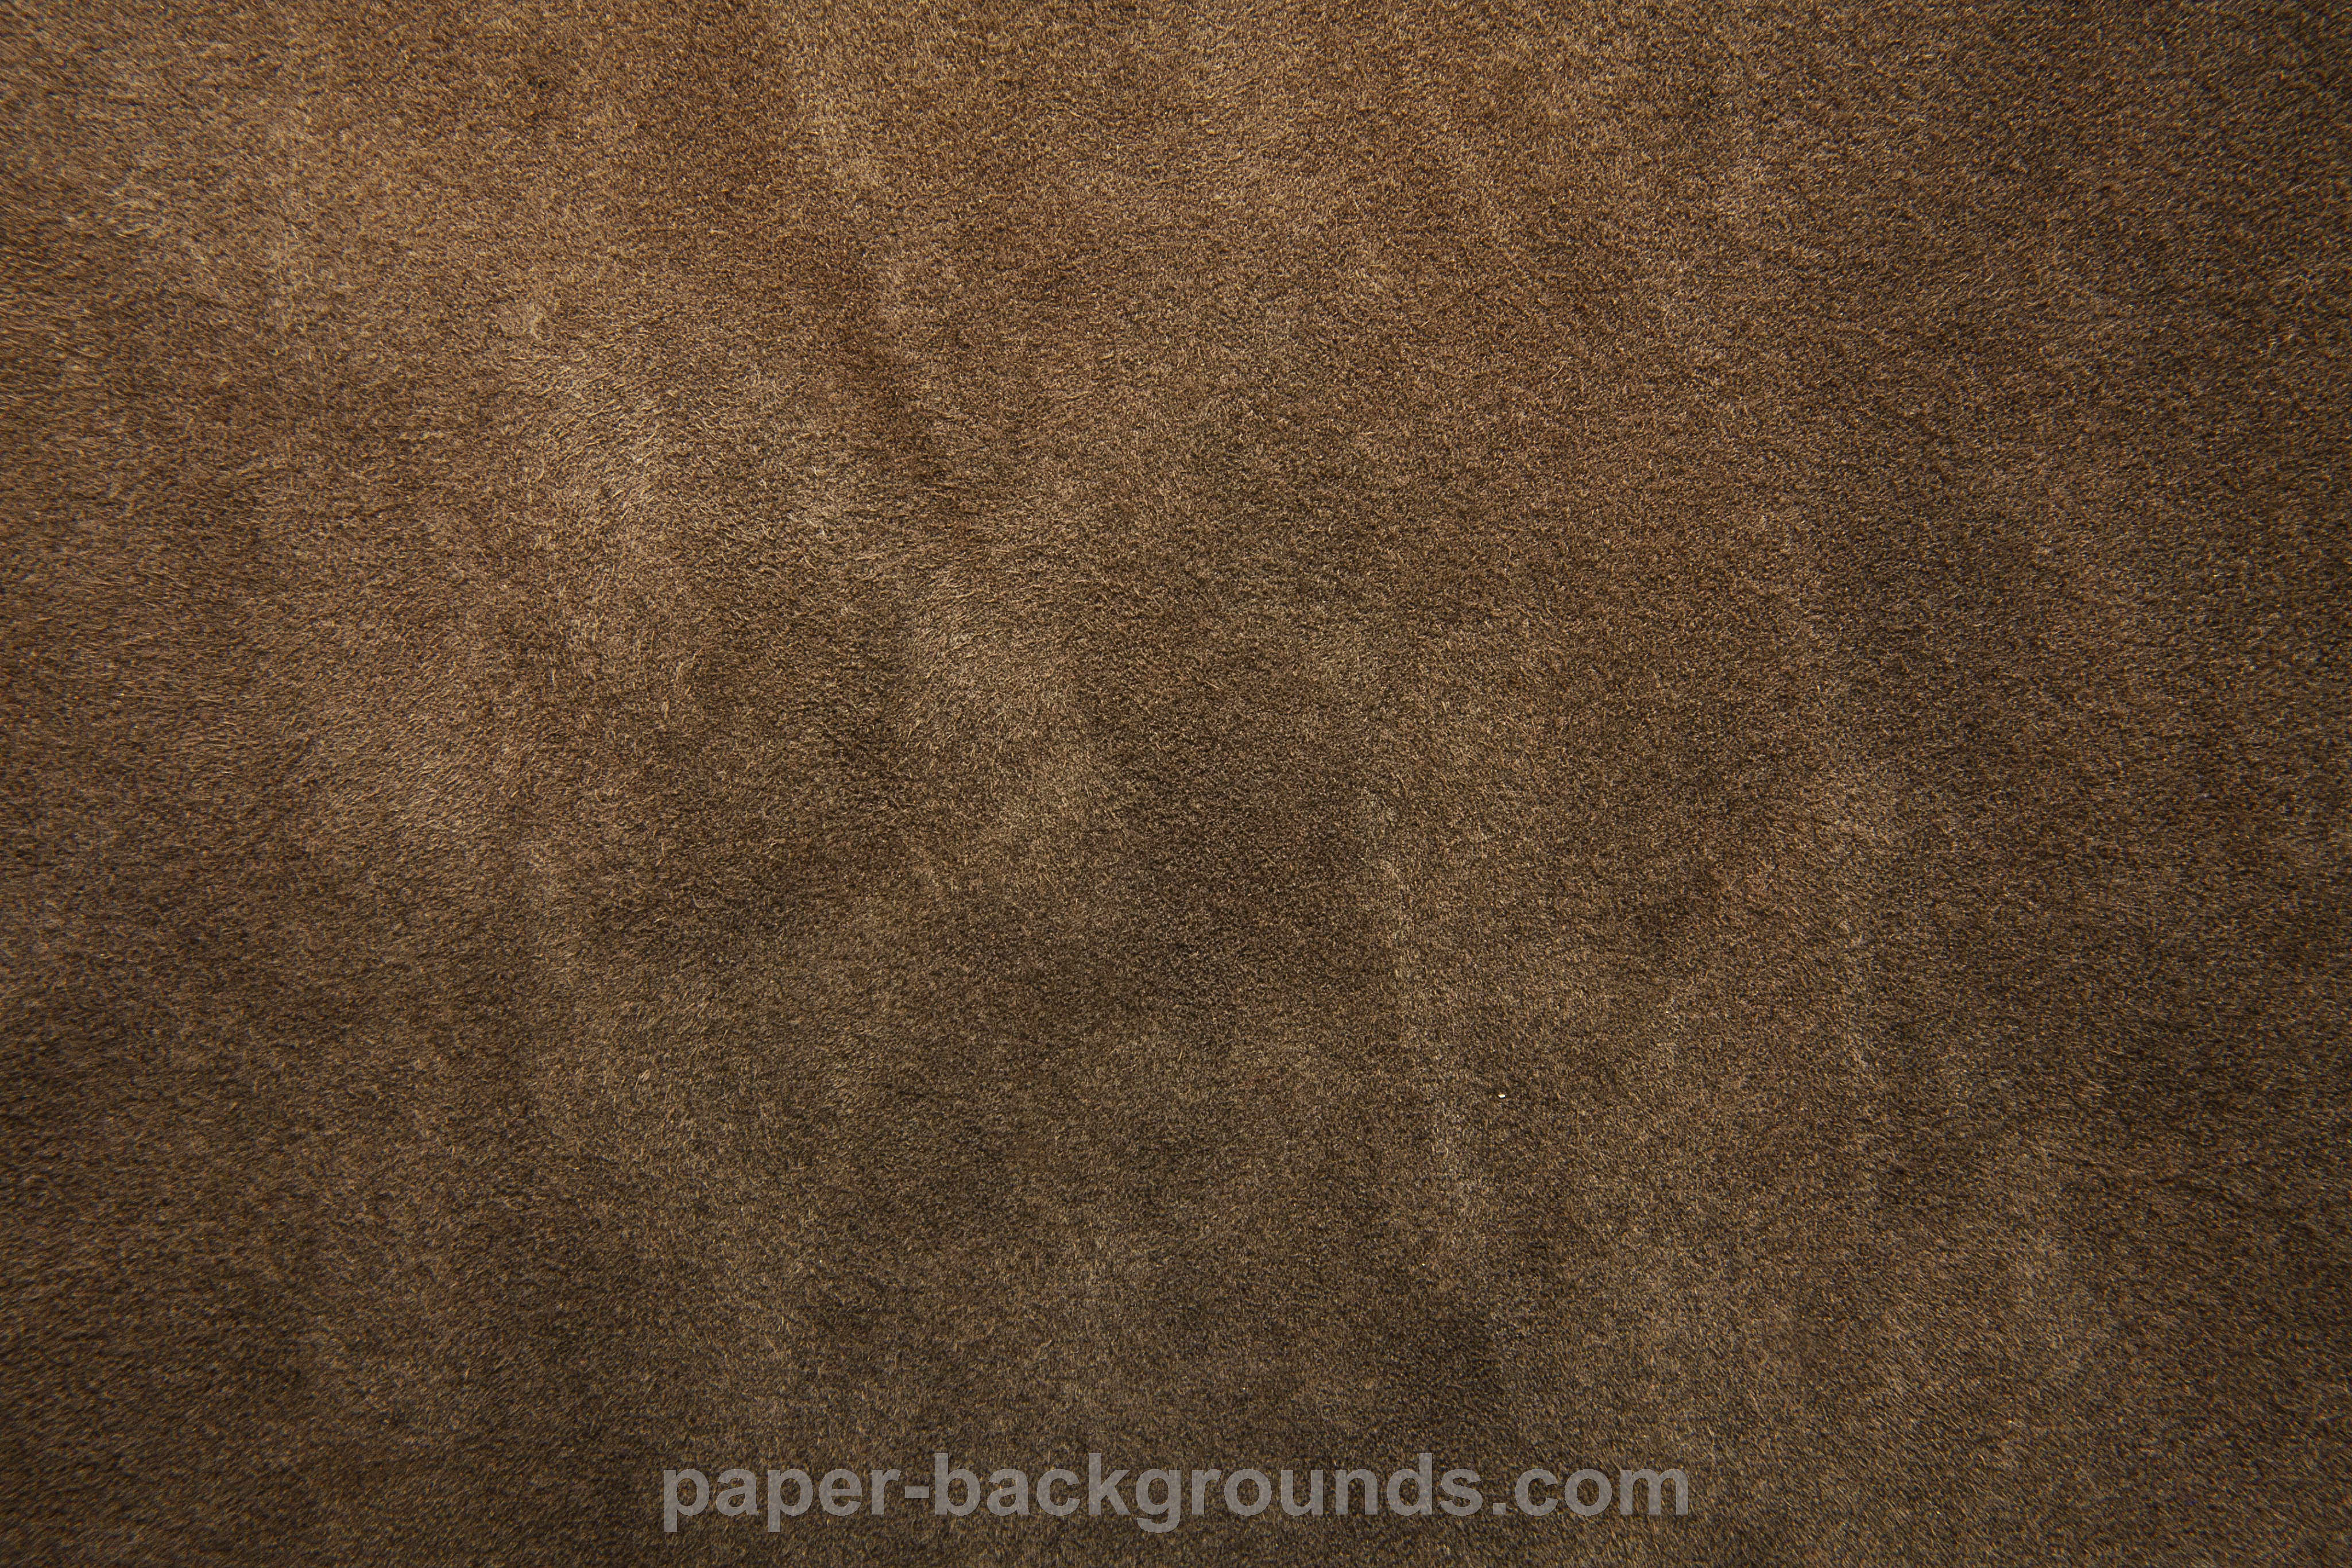 Paper Backgrounds | brown-leather-texture-background